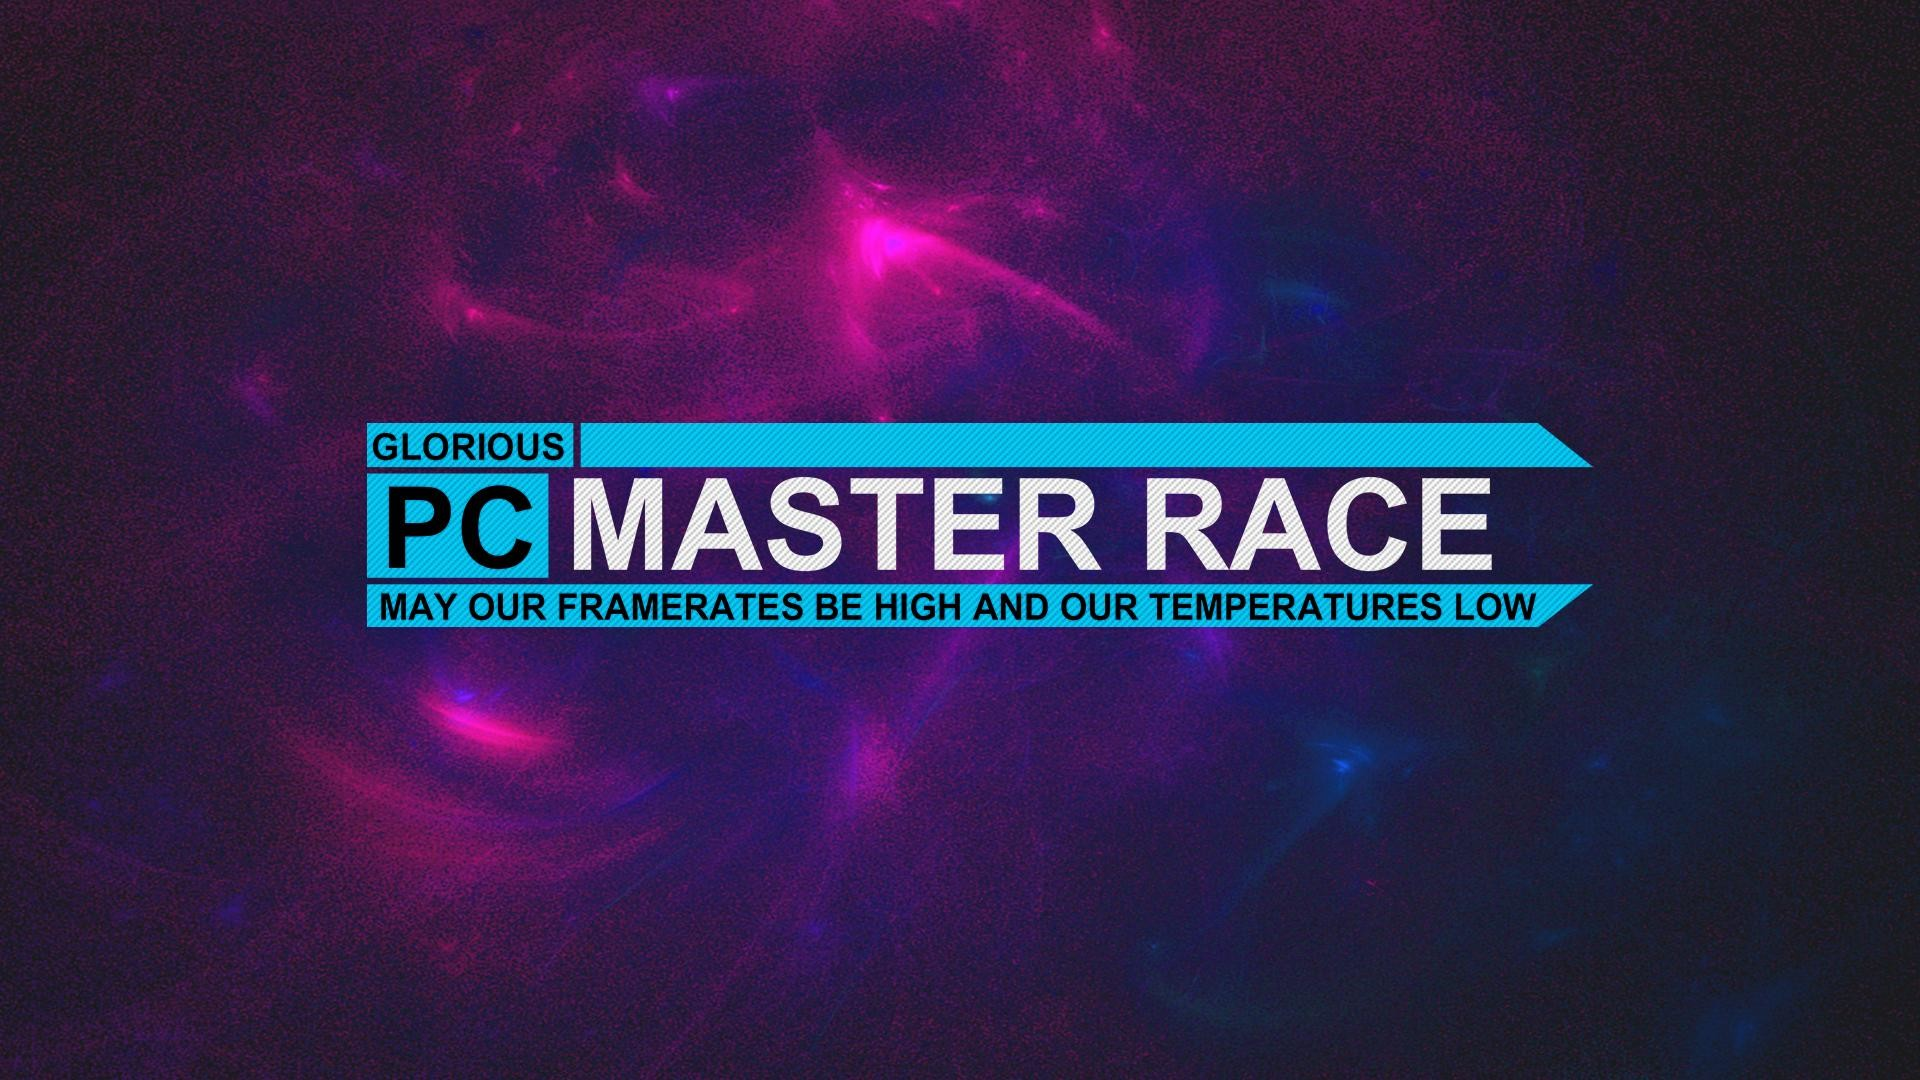 Pc Master Race Hd 2585266 Hd Wallpaper Backgrounds Download